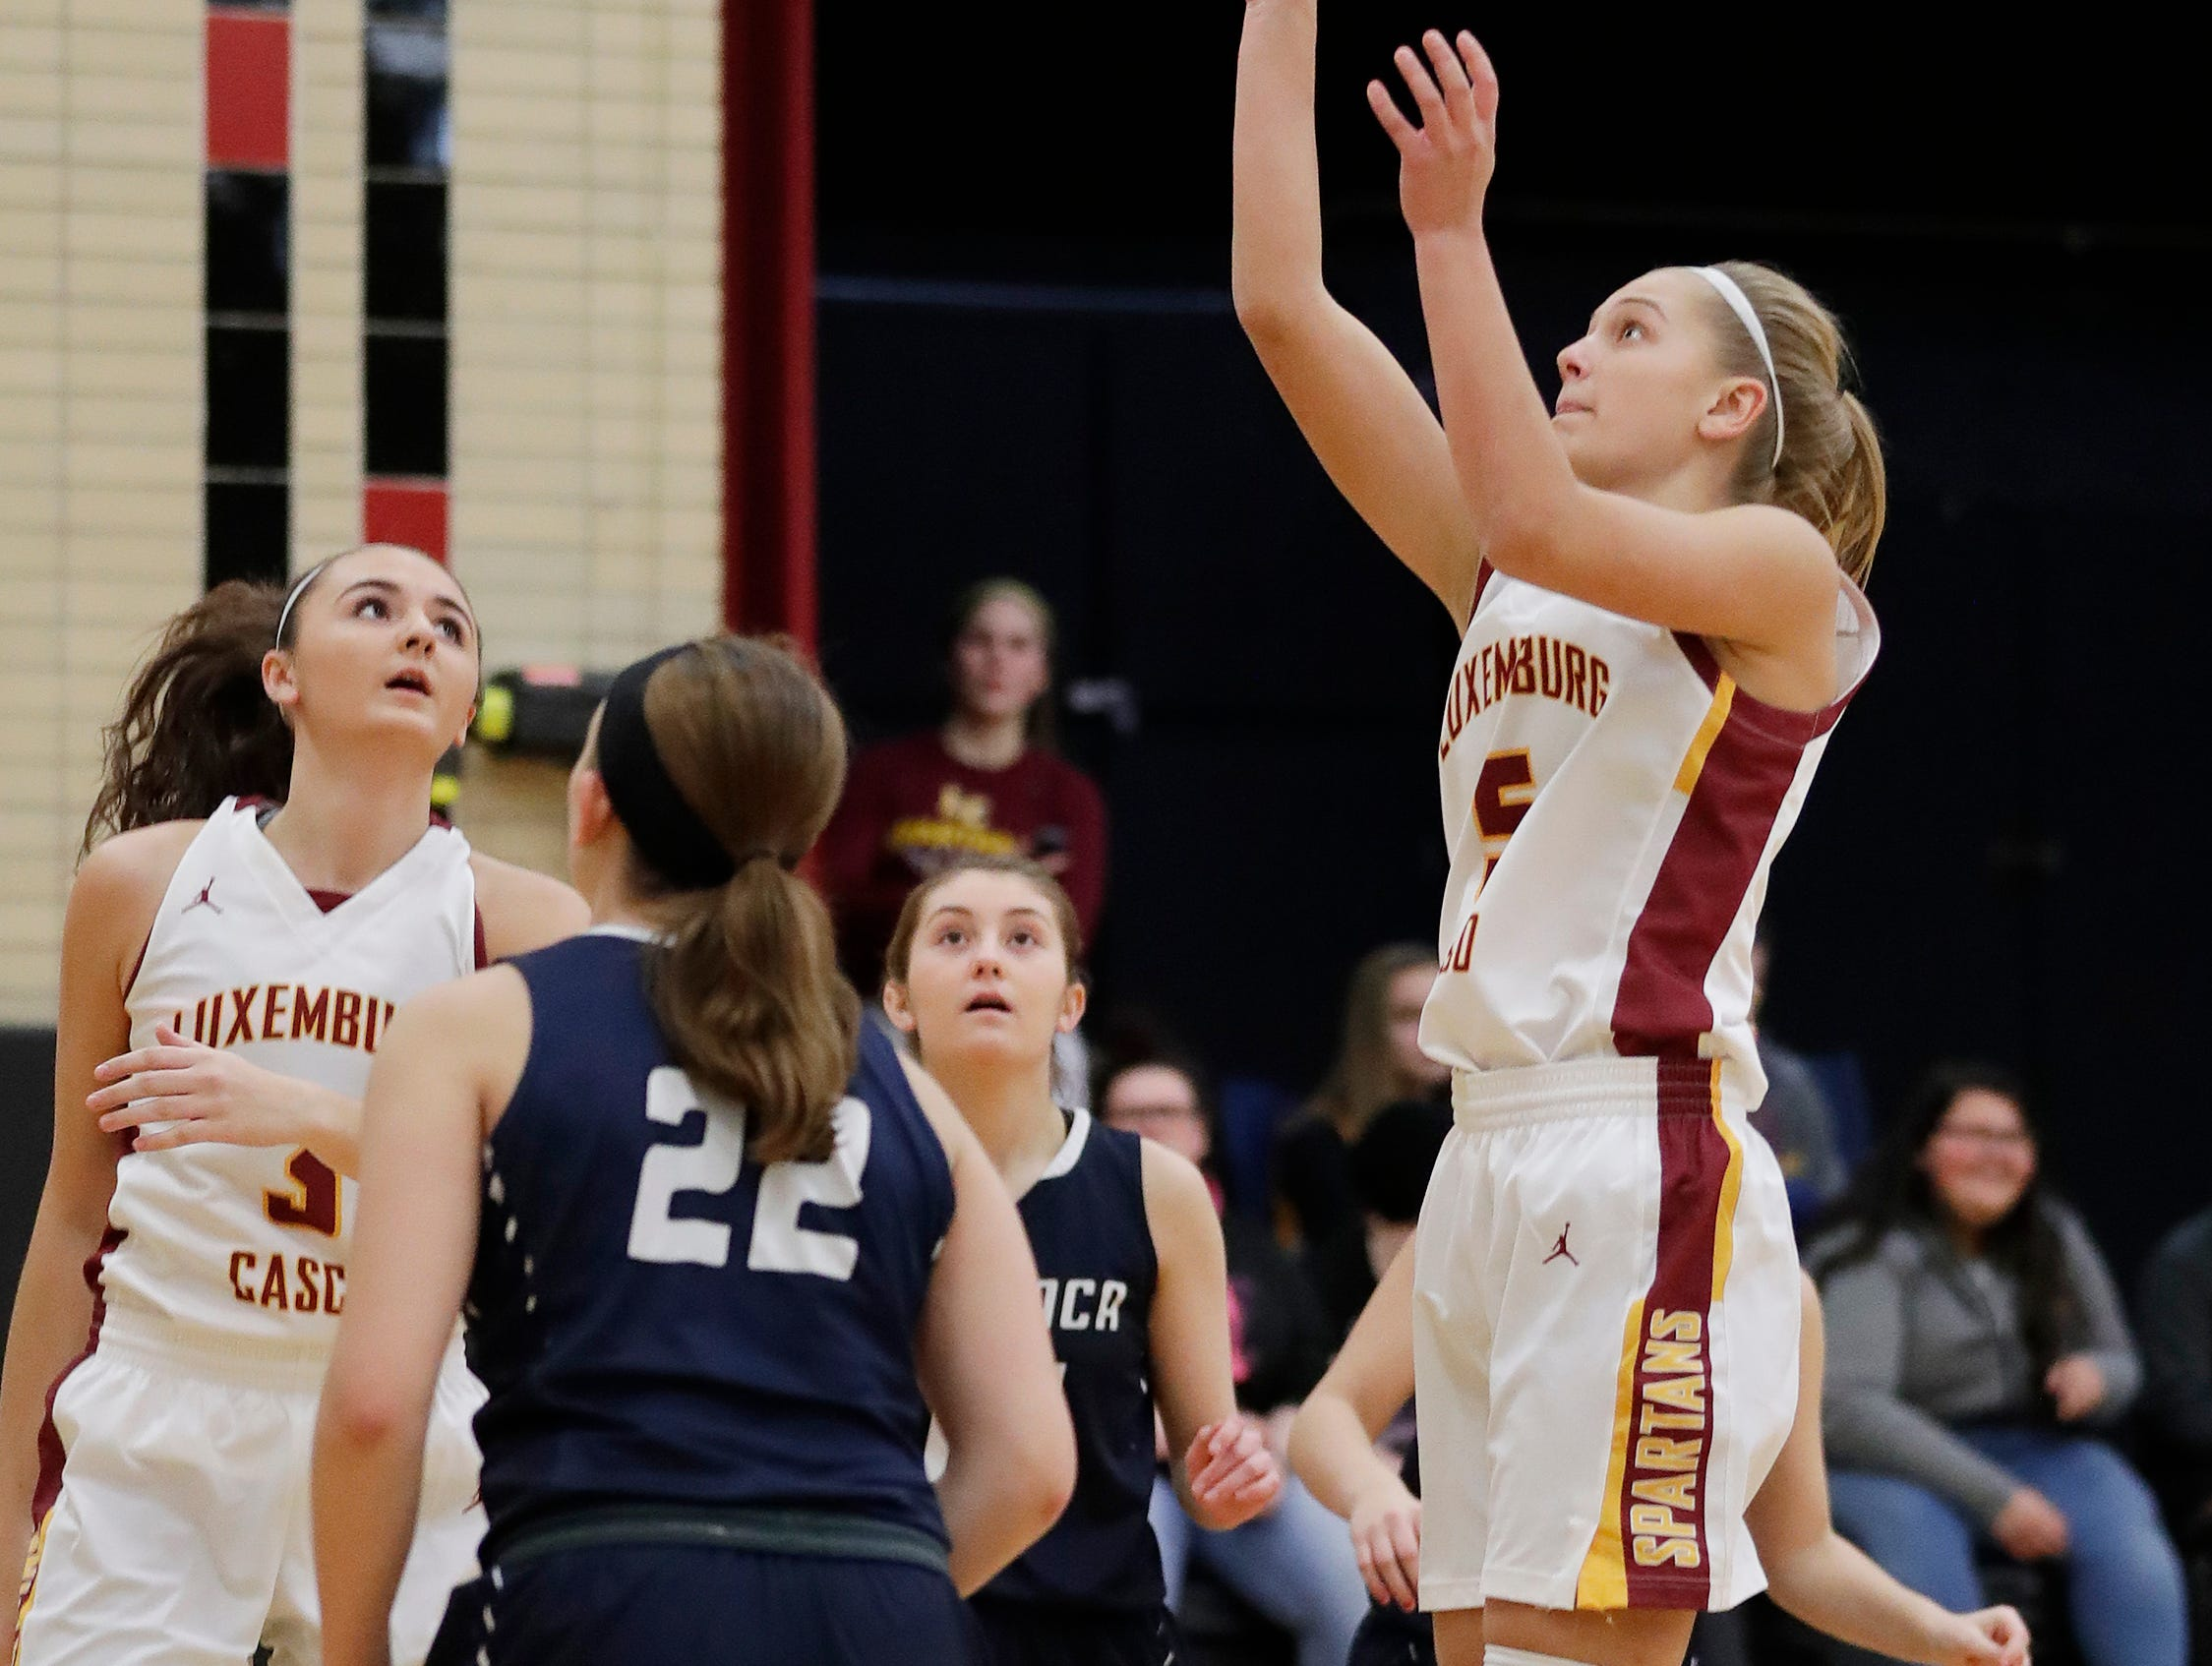 Luxemburg-Casco's Jenna Jorgensen (5) shoots against Waupaca in a girls basketball game at Luxemburg-Casco high school on Thursday, January 10, 2019 in Luxemburg, Wis.